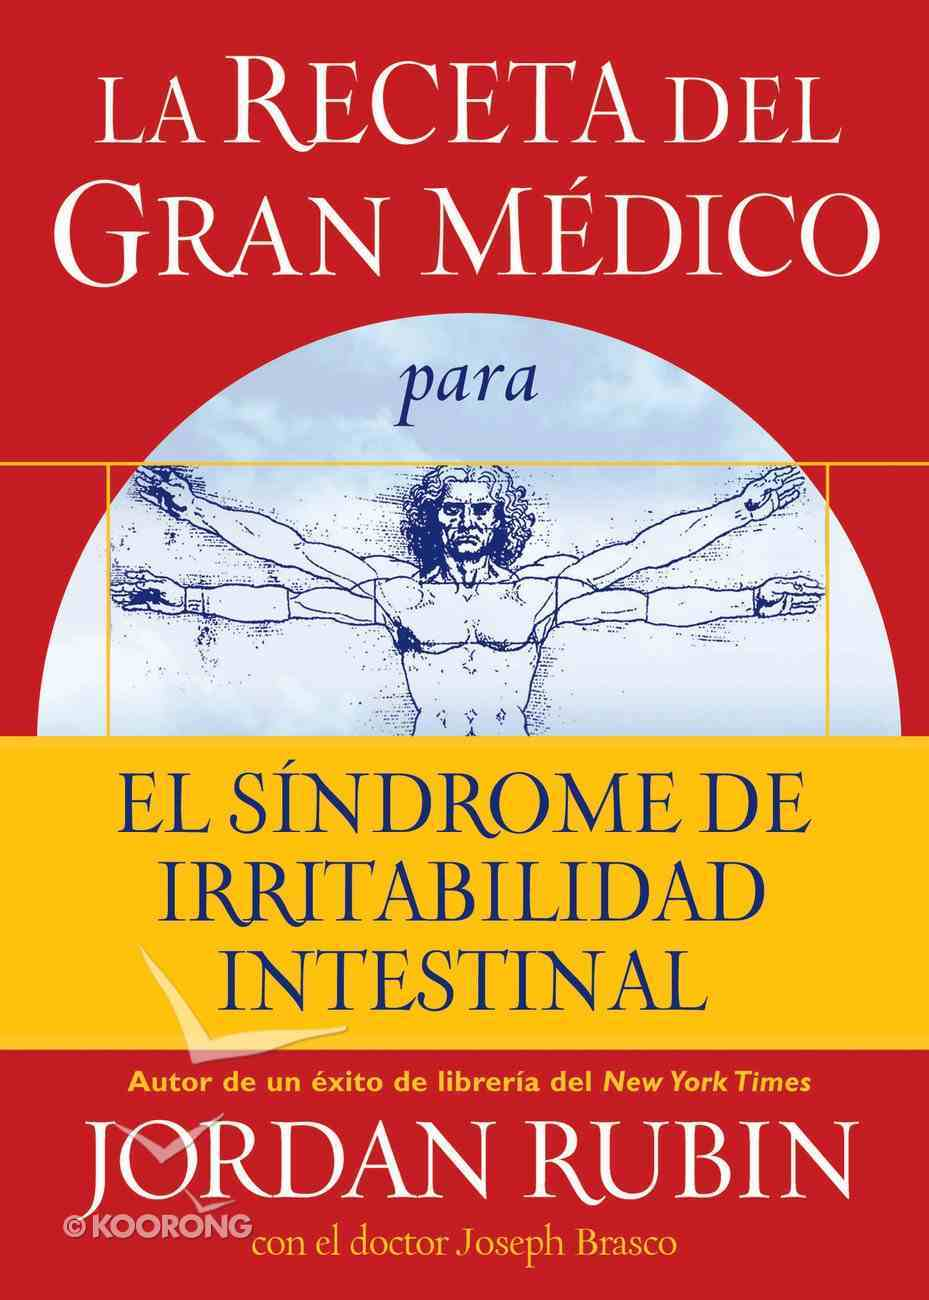 La Receta Del Gran Medico Para El Sindrome De Irritabilidad Intestinal (Spanish) (Spa) (The Great Physician's Rx For Irritable Bowel Syndrome) eBook